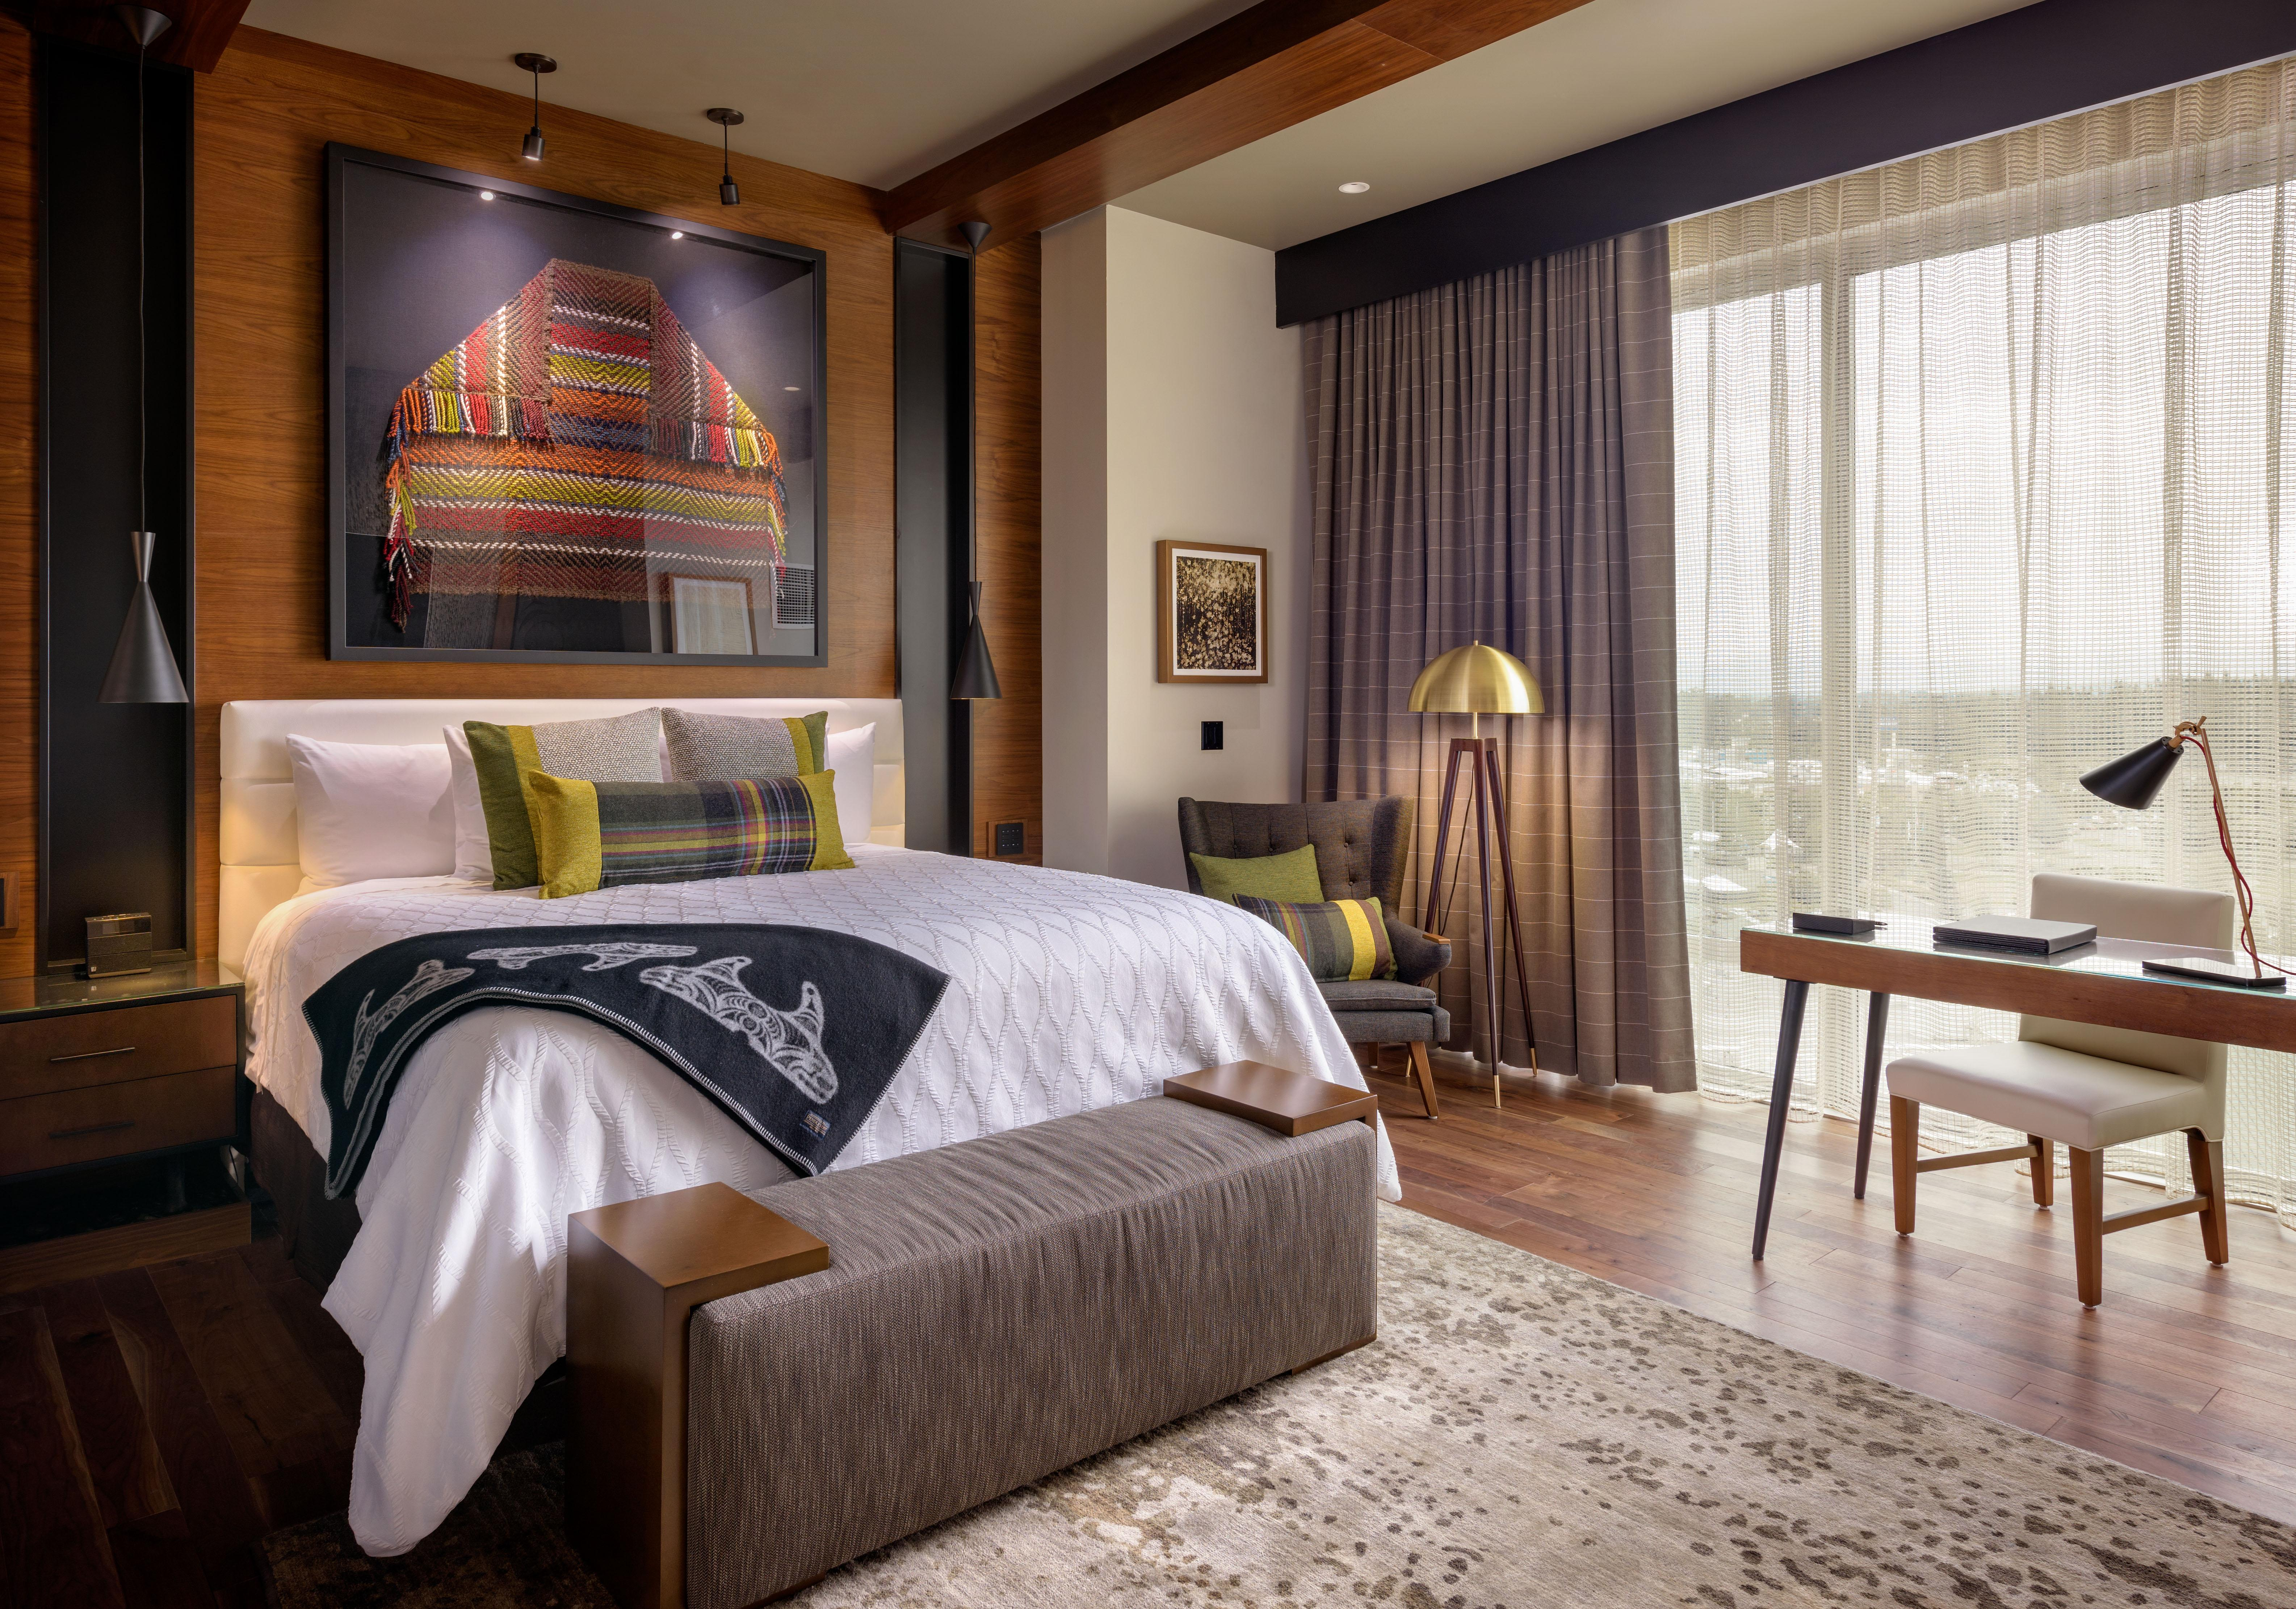 The updated styling in the rooms at Tulip pays homage to the rich history and culture of the Tulalip Tribes while taking a leap forward in design, technology, and luxury.